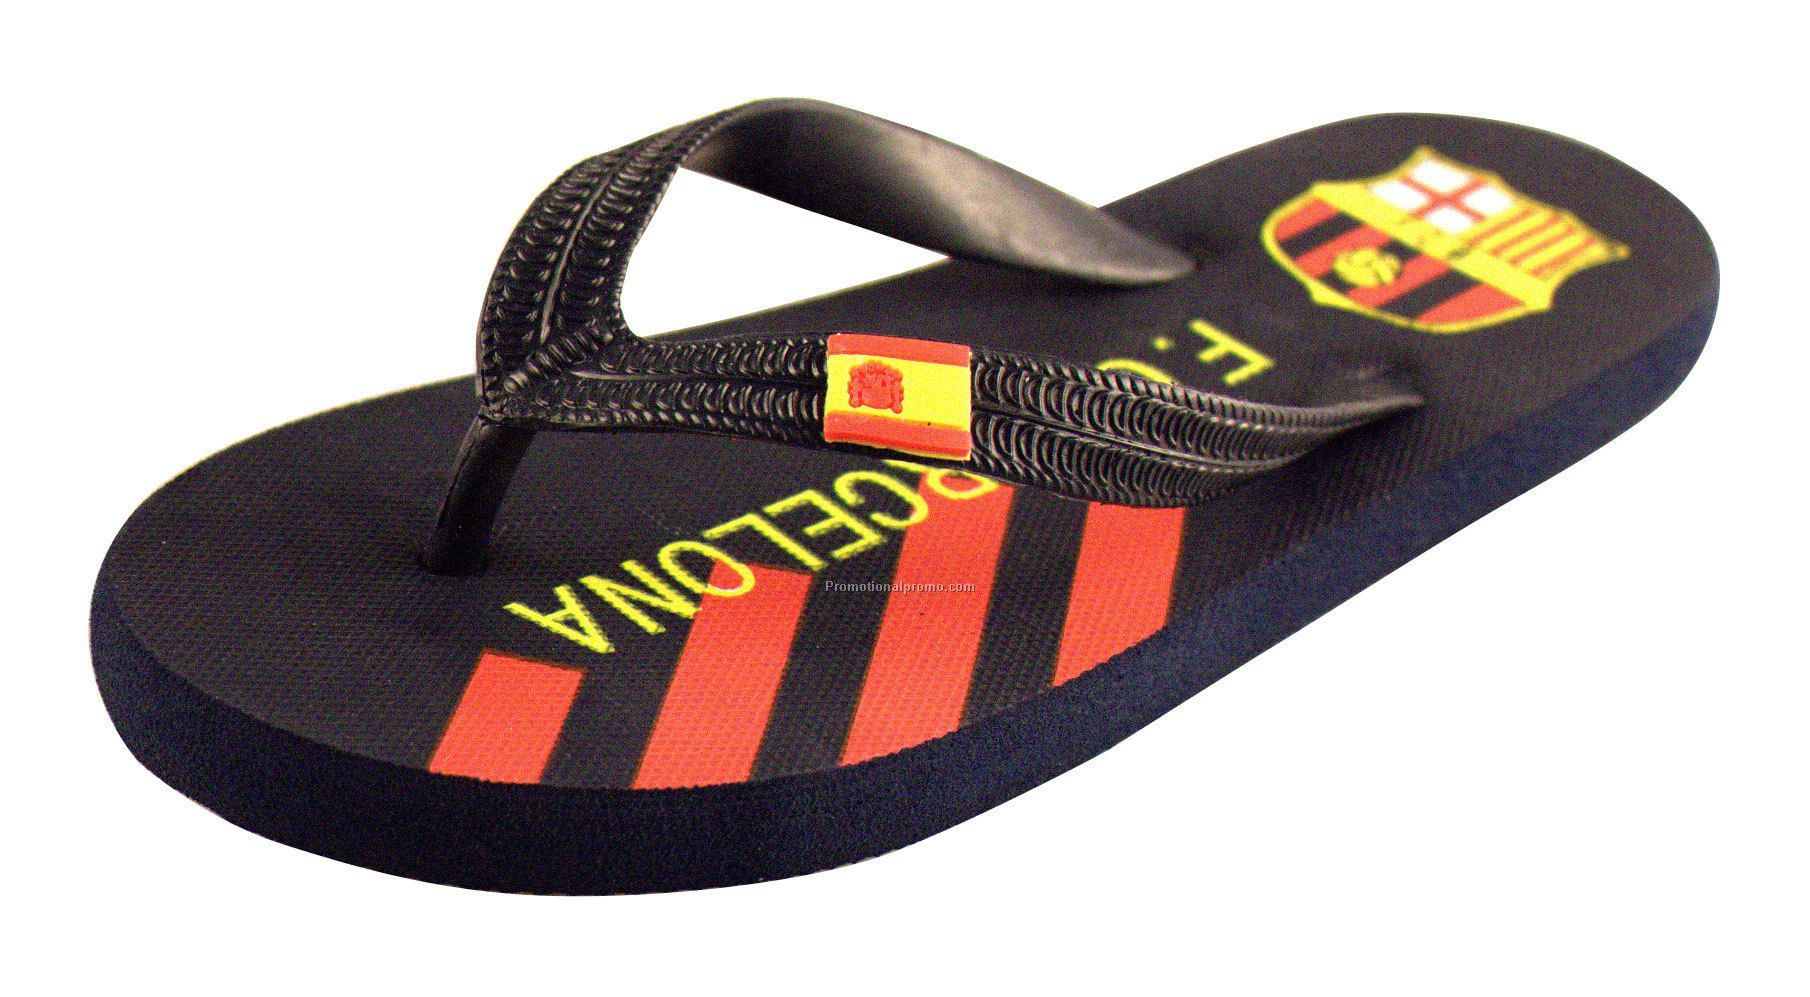 Customized slipper flip flops